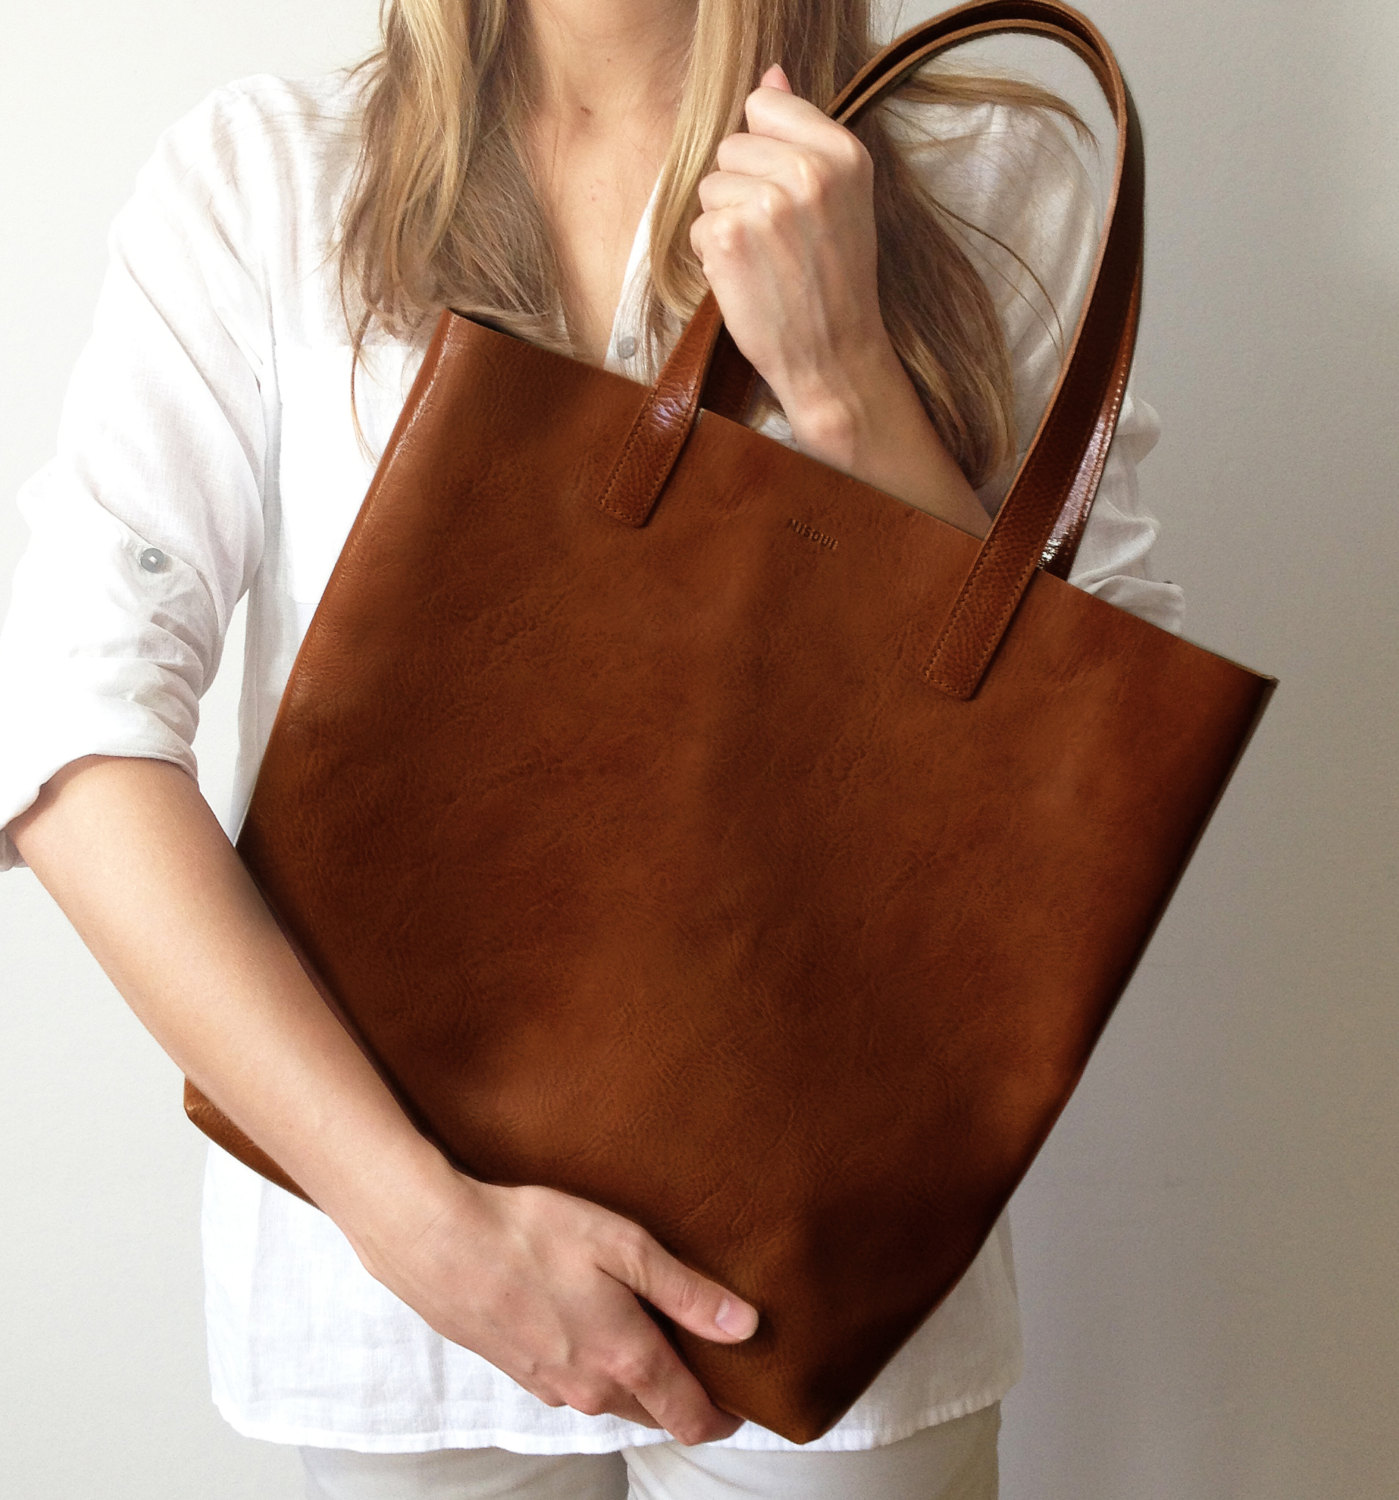 Molly Shopper in Chestnut by Misoui | 6 Eco-Friendly Tote bags | Keeper & Co.